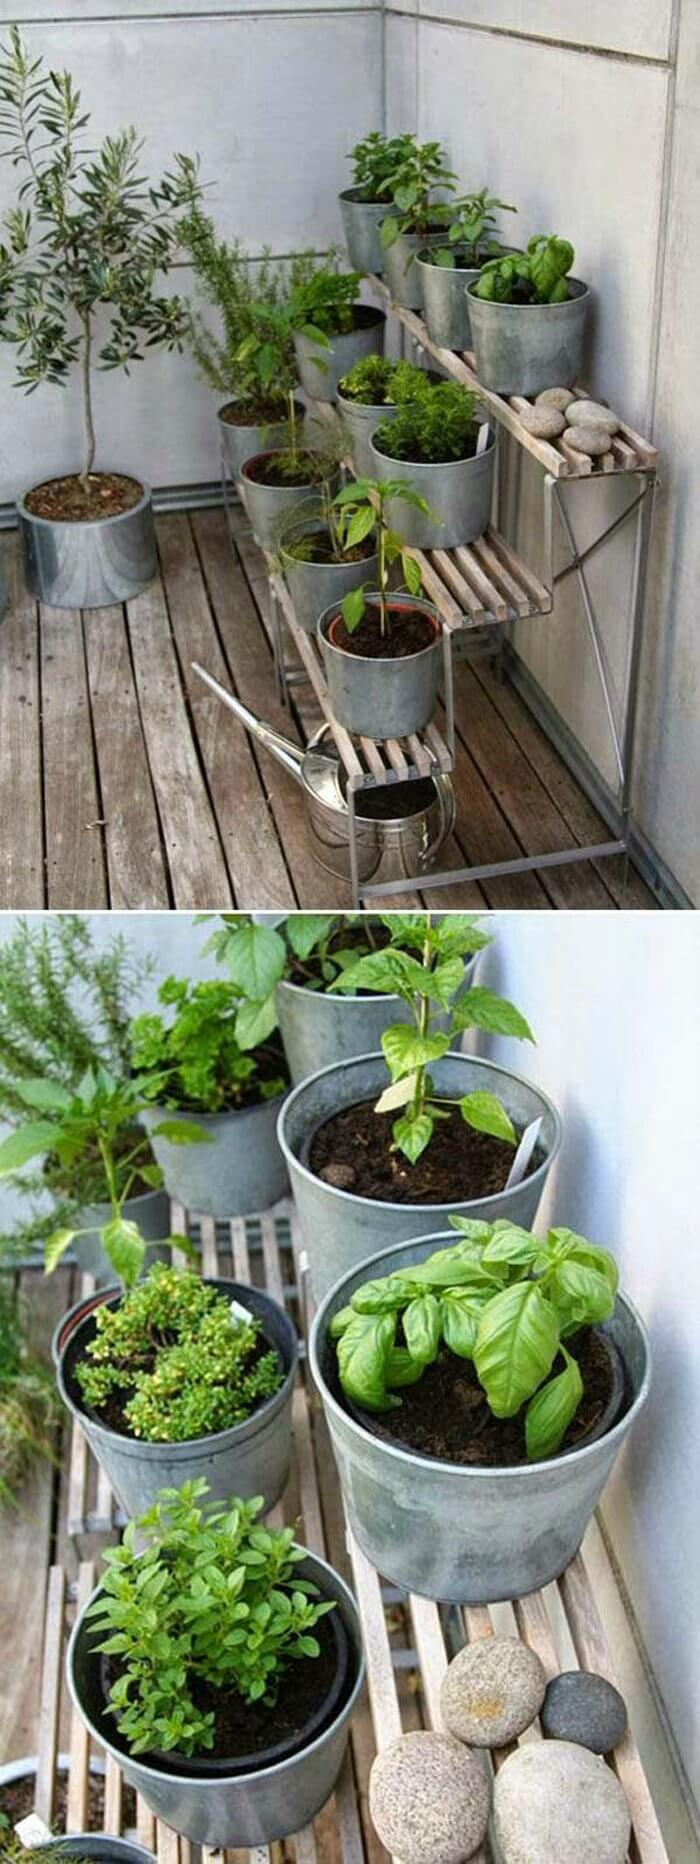 Superieur 25 Best Herb Garden Ideas And Designs For 2019